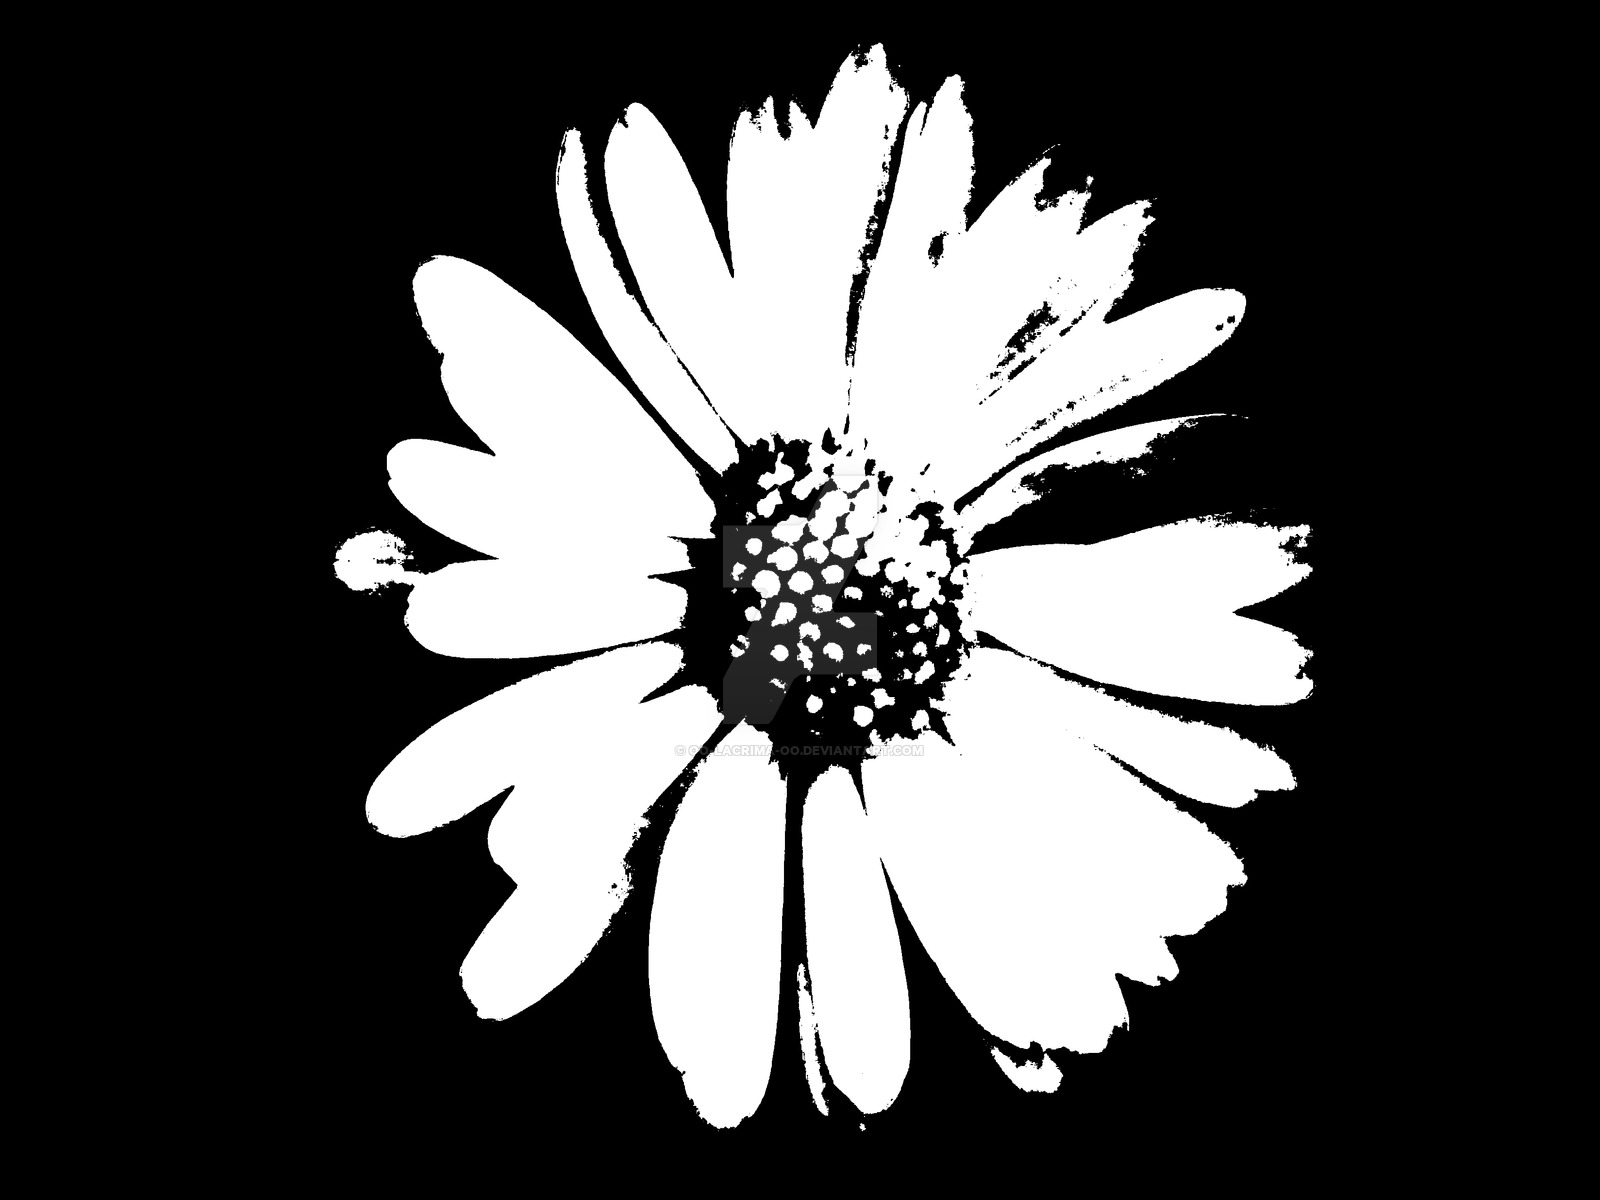 Black and white daisy drawing at getdrawings free for personal 1600x1200 0016 daisy in black and white by oo lacrima oo on deviantart izmirmasajfo